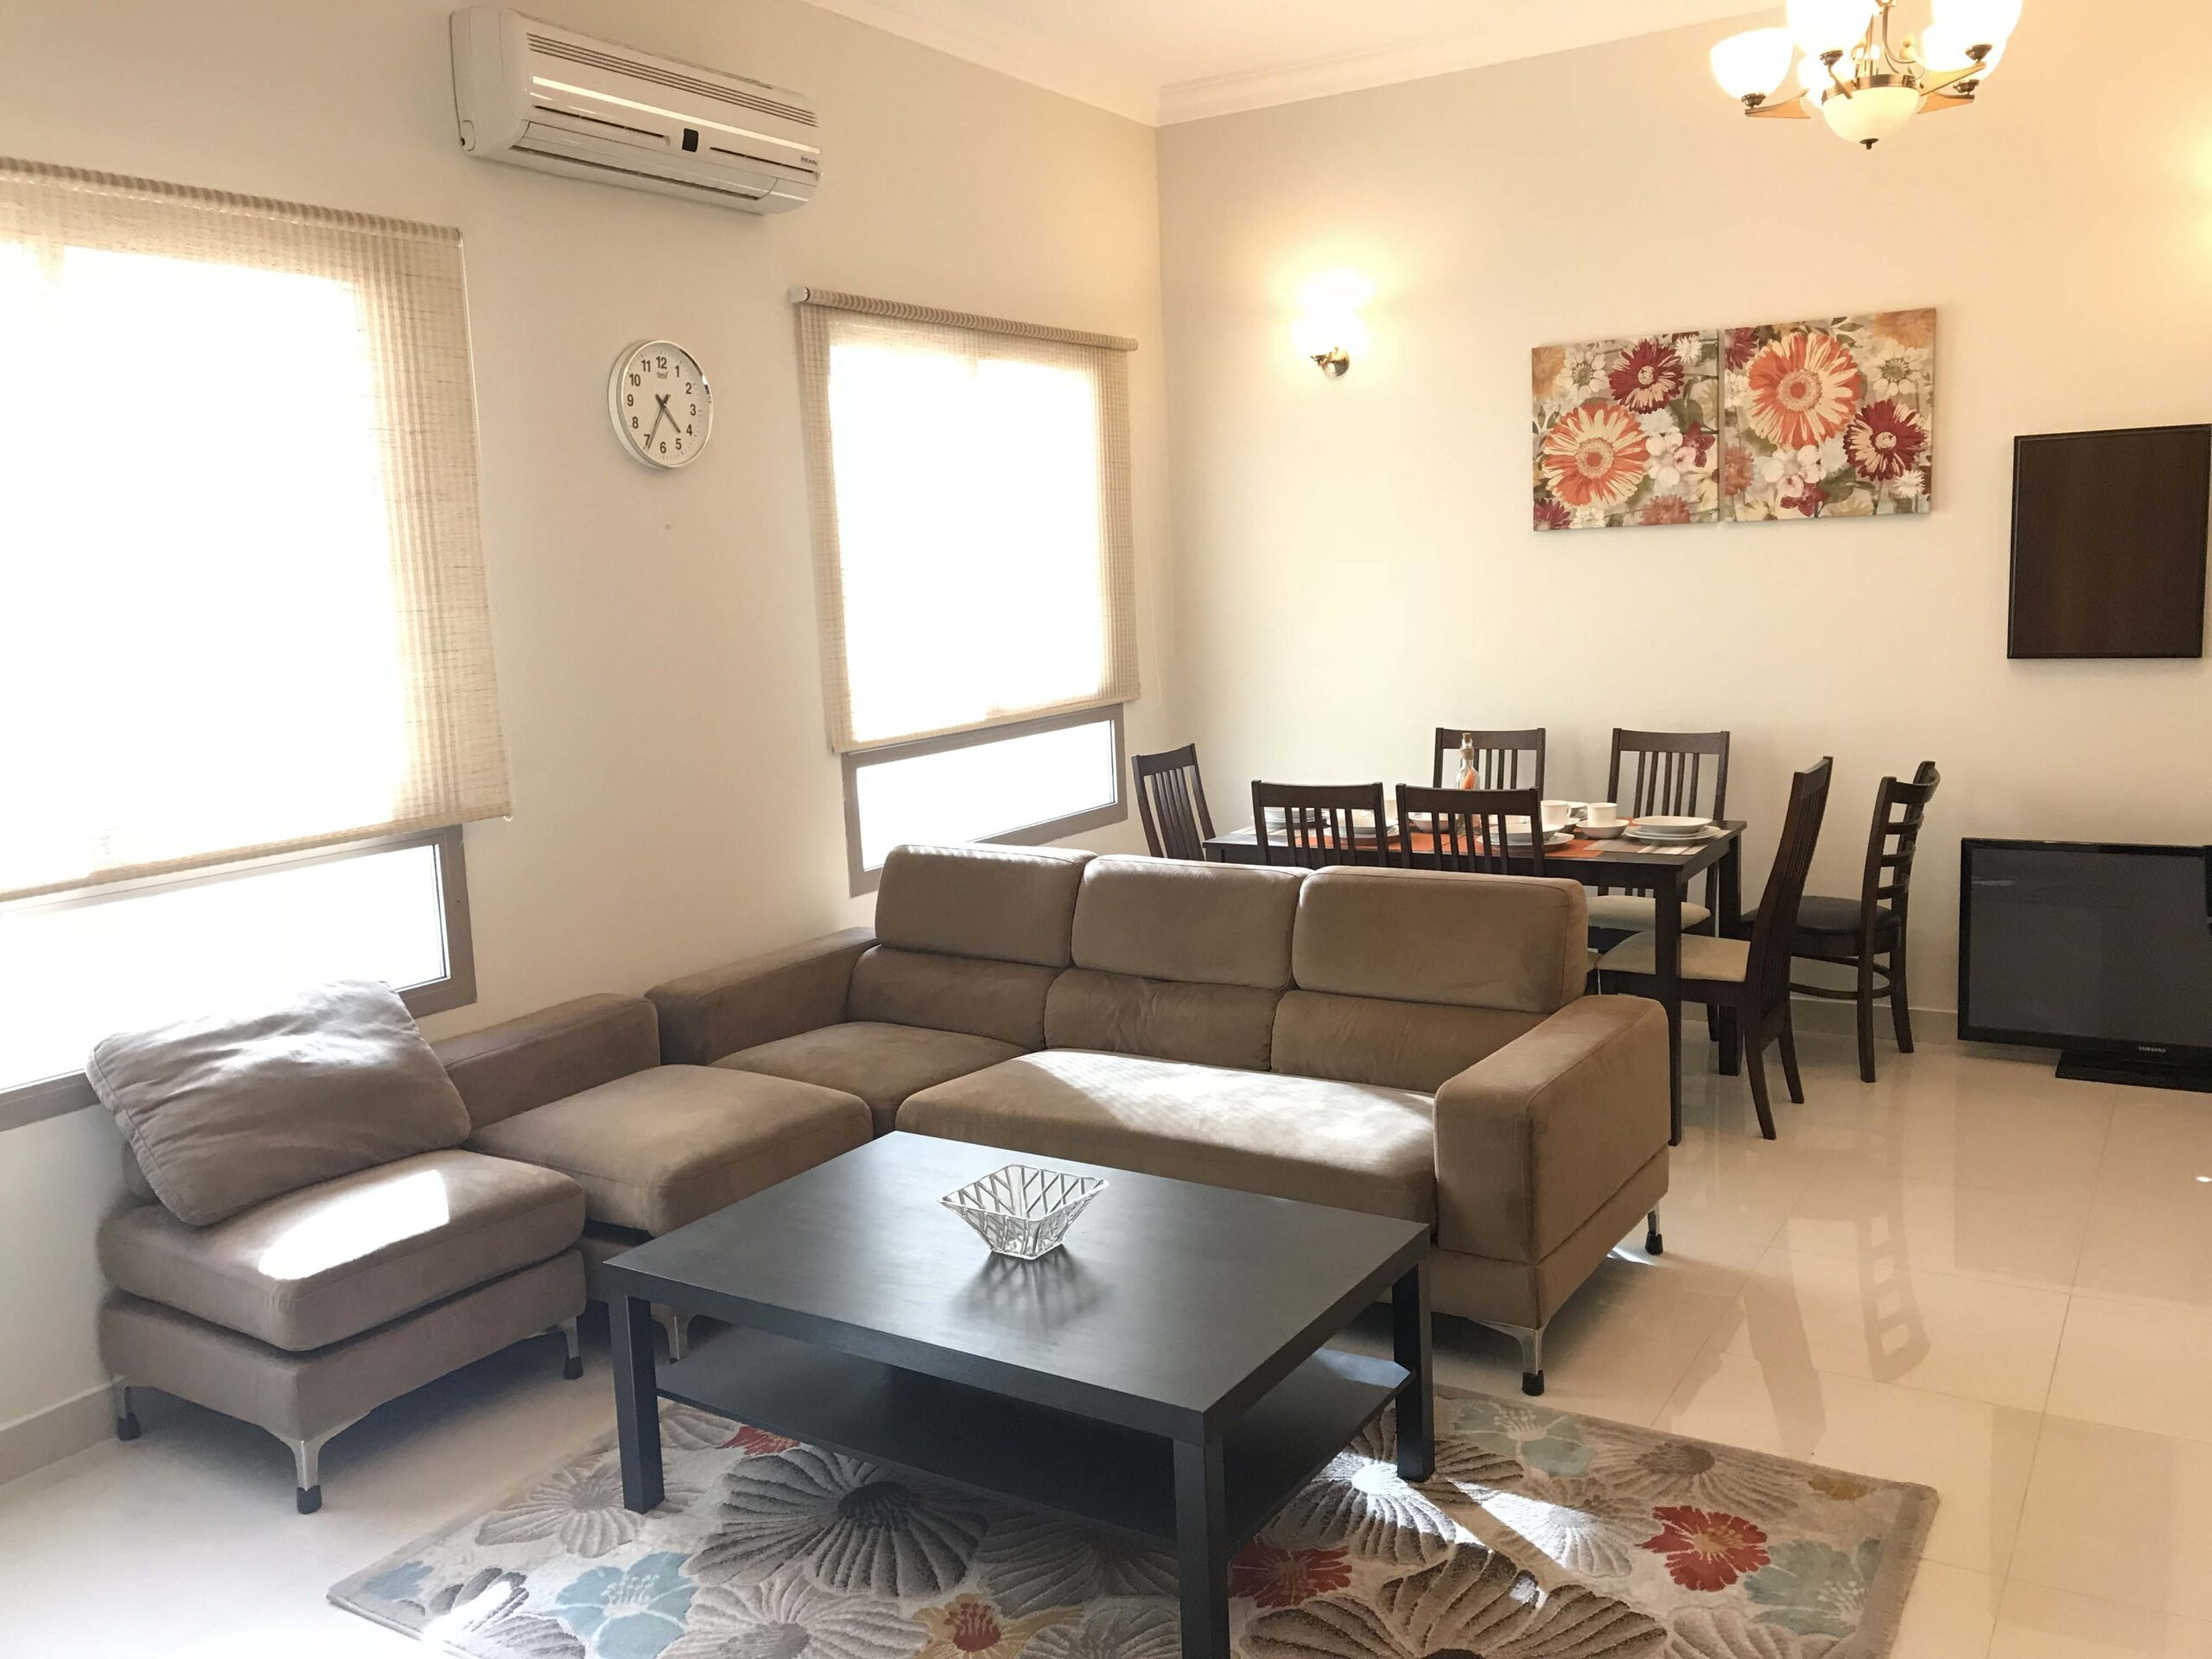 Apartment for rent fully furnished located in Bu Ghazal